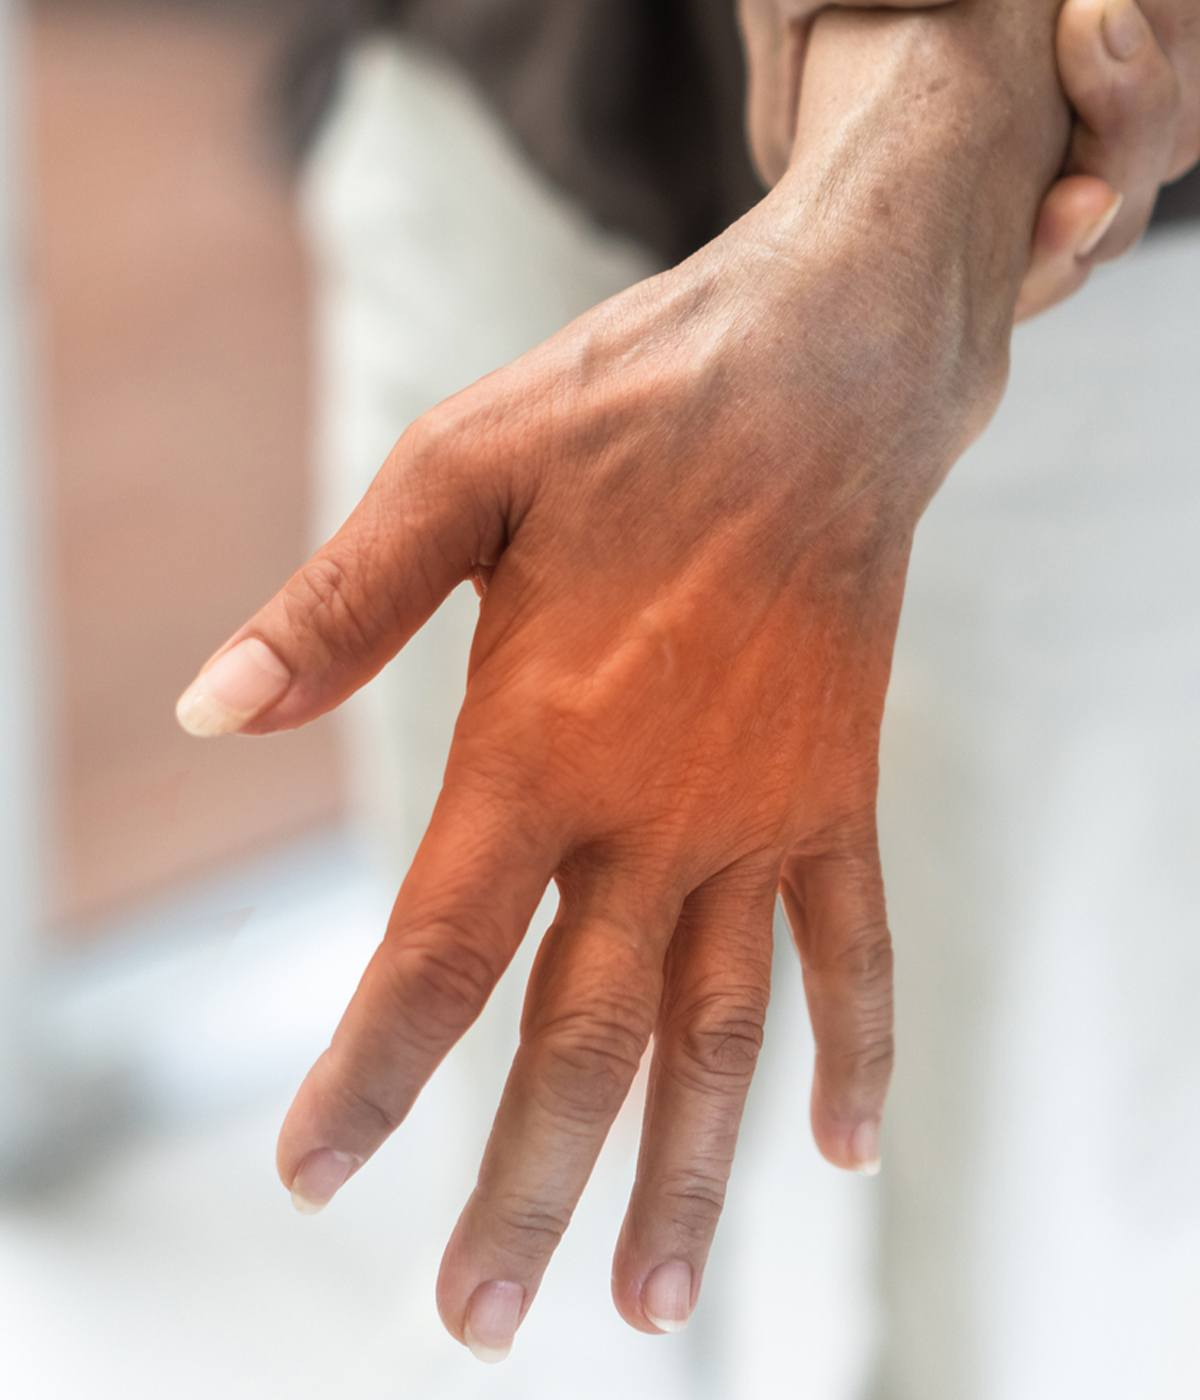 Nerve Damage Pain in Hand